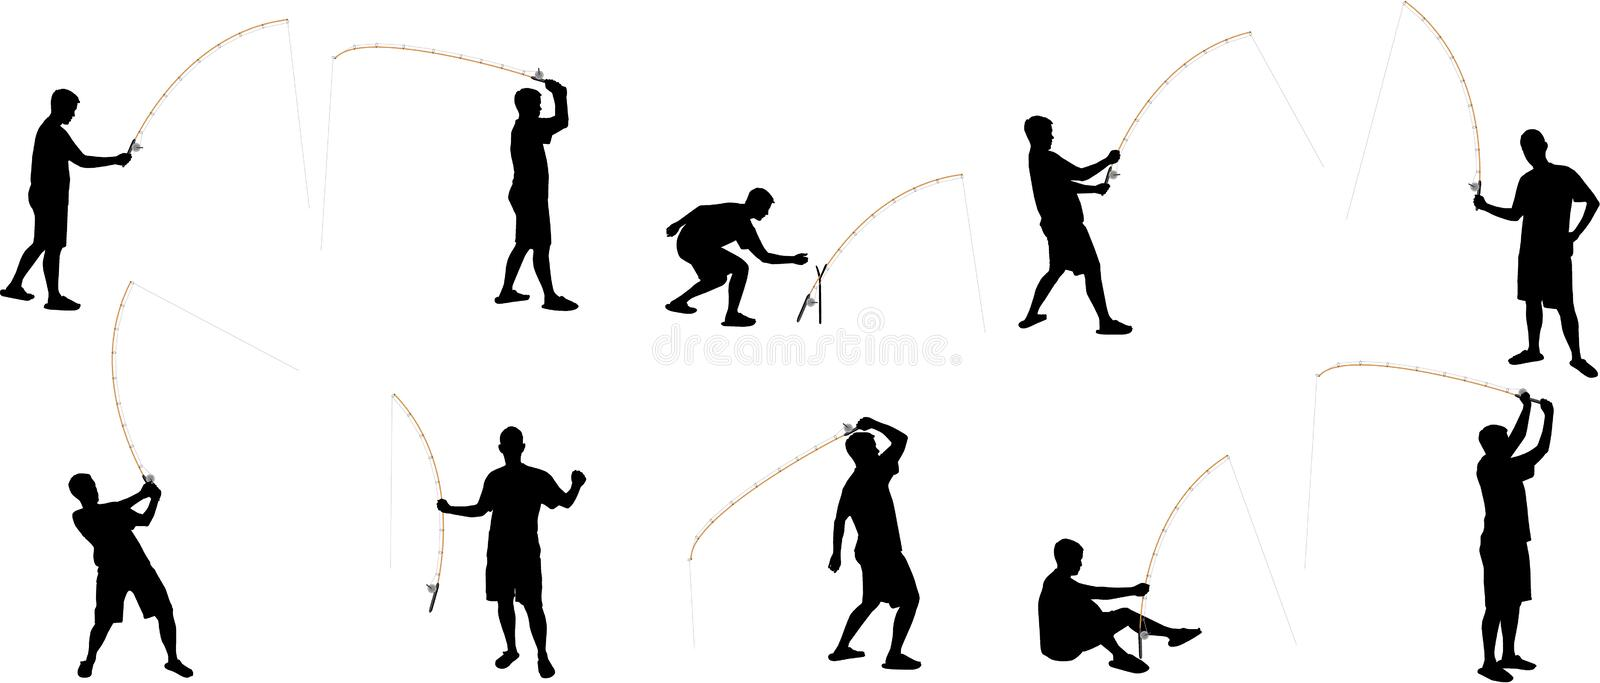 Fishing silhouettes stock image